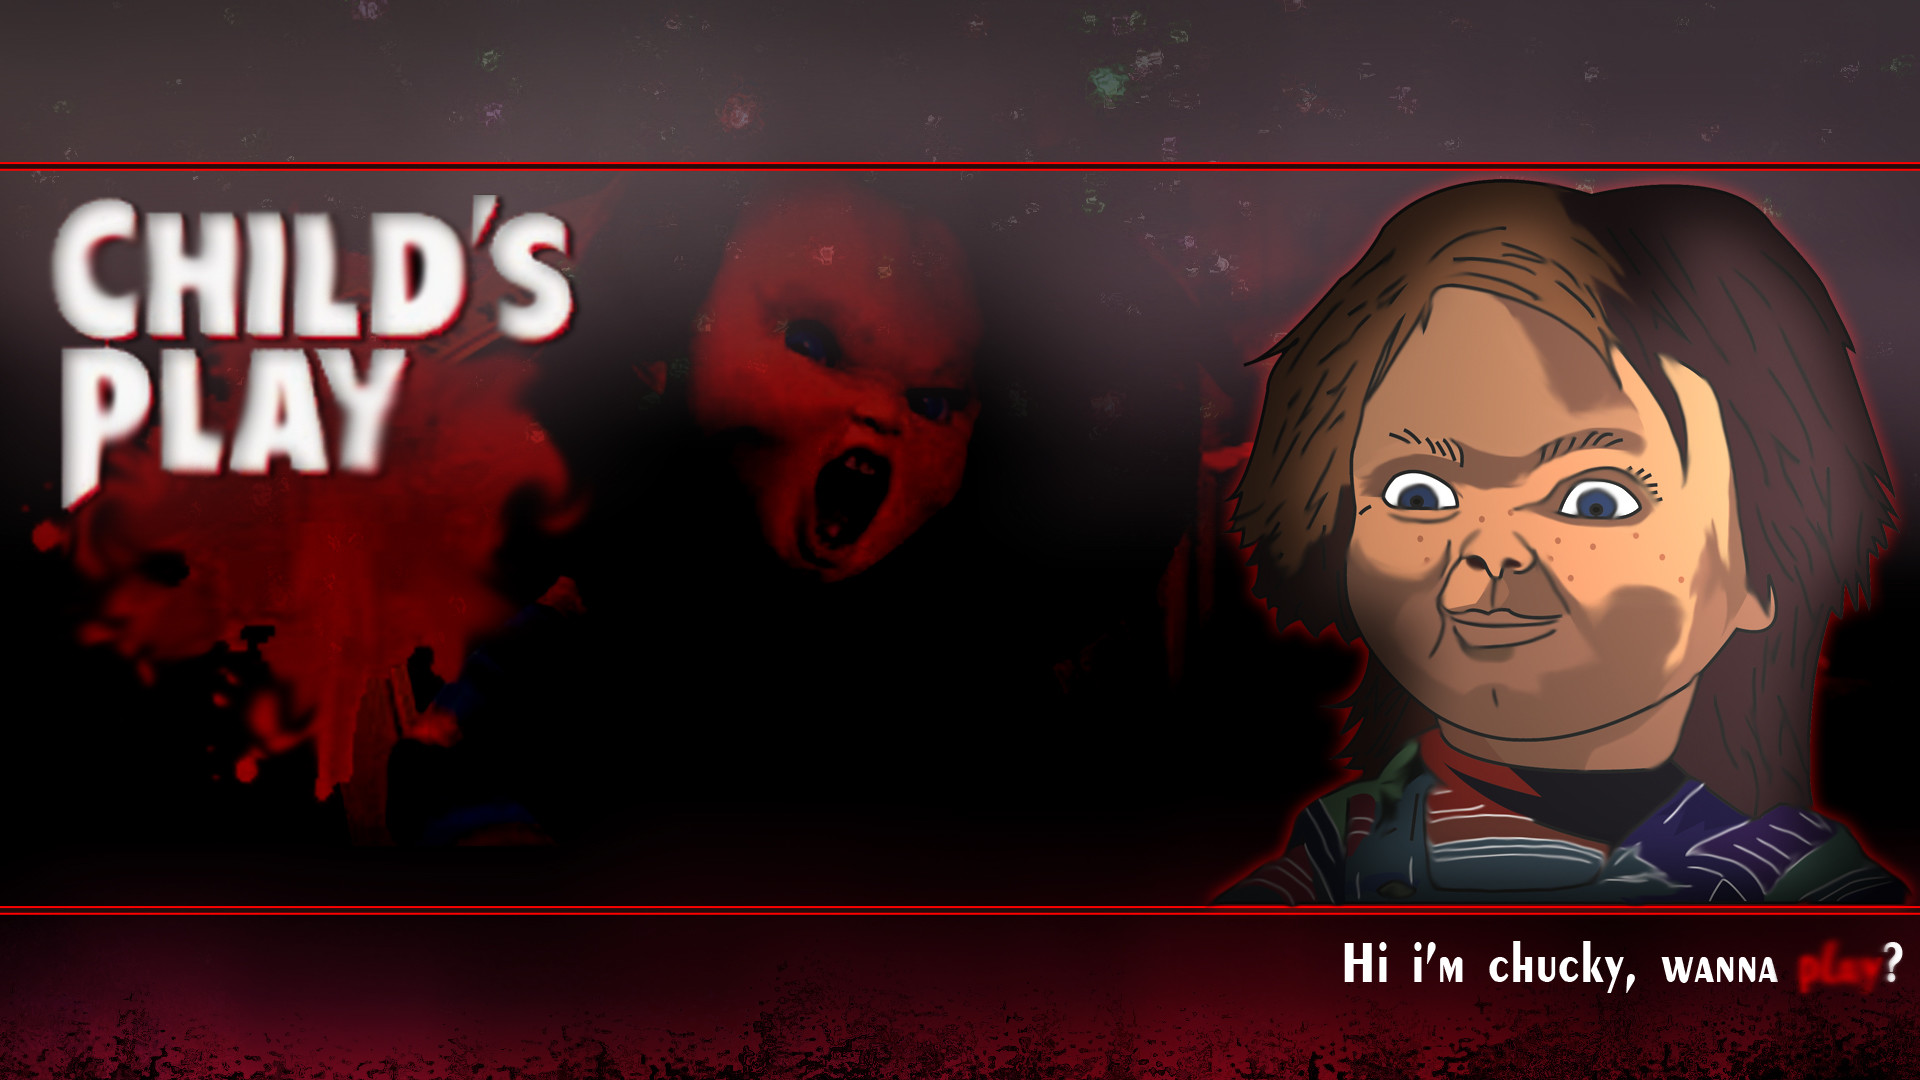 Childs Play Chucky Wallpaper by MikeDarko Childs Play Chucky Wallpaper by  MikeDarko